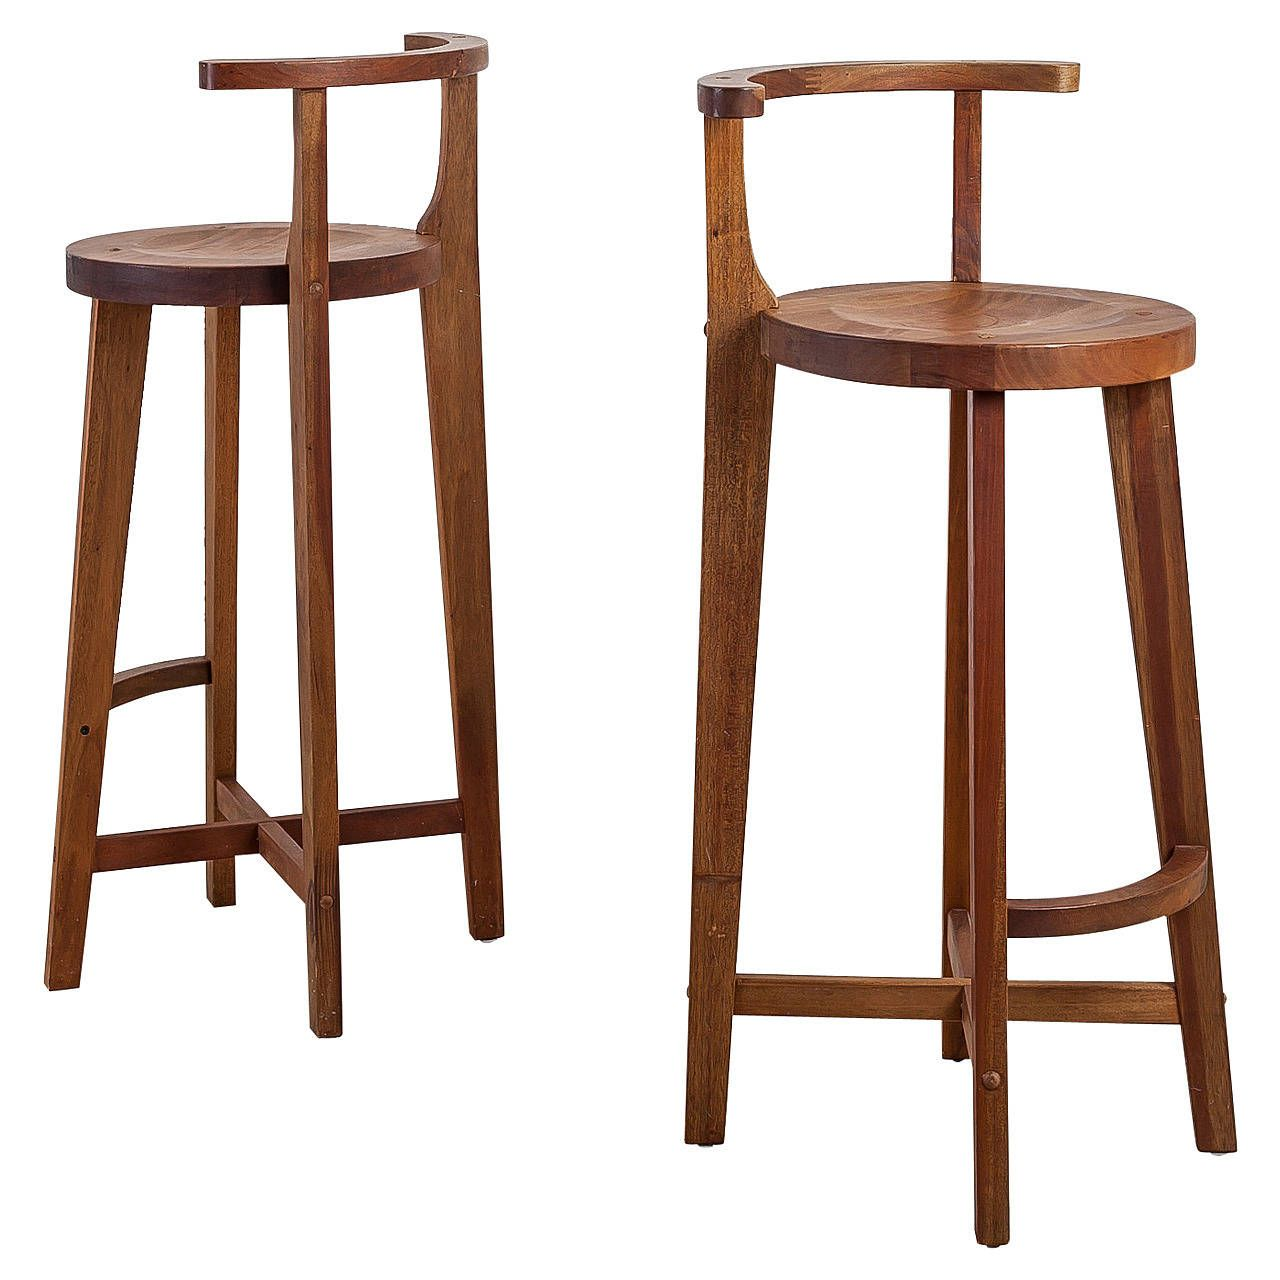 Pair Studio Crafted Wooden Bar Stools With Rounded Back Rests Wooden Bar Stools Bar Stools With Backs Bar Stool Chairs